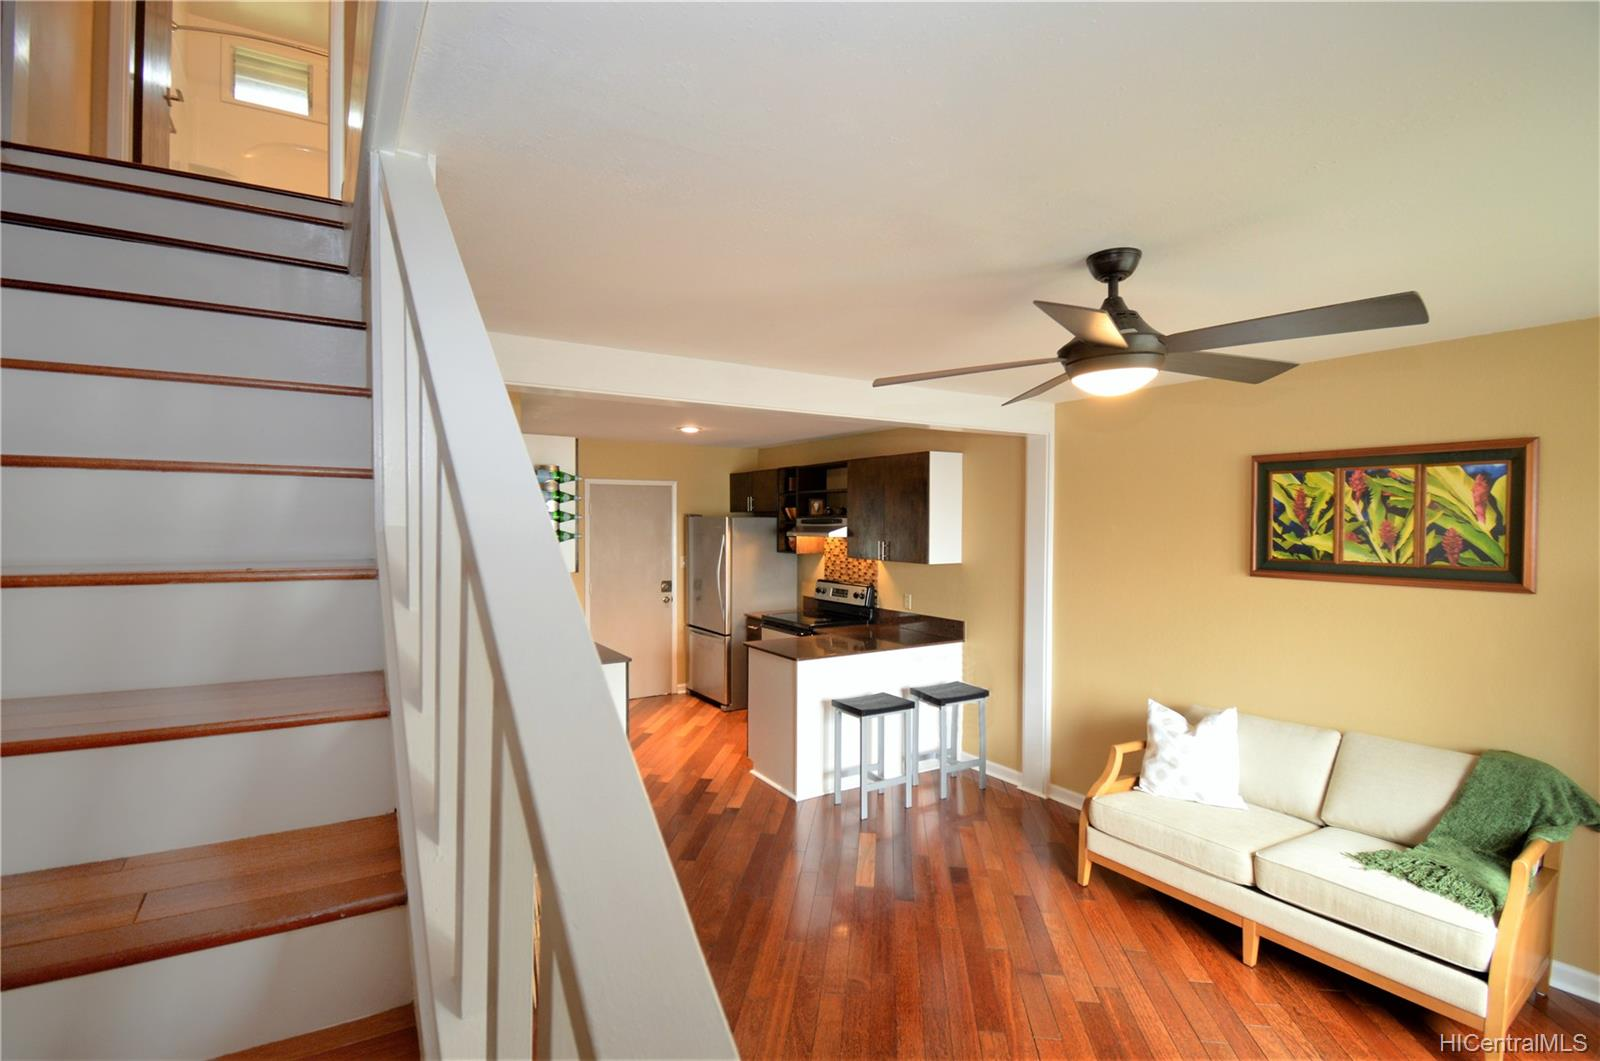 98-1397 Hinu Place townhouse # D, Pearl City, Hawaii - photo 3 of 25